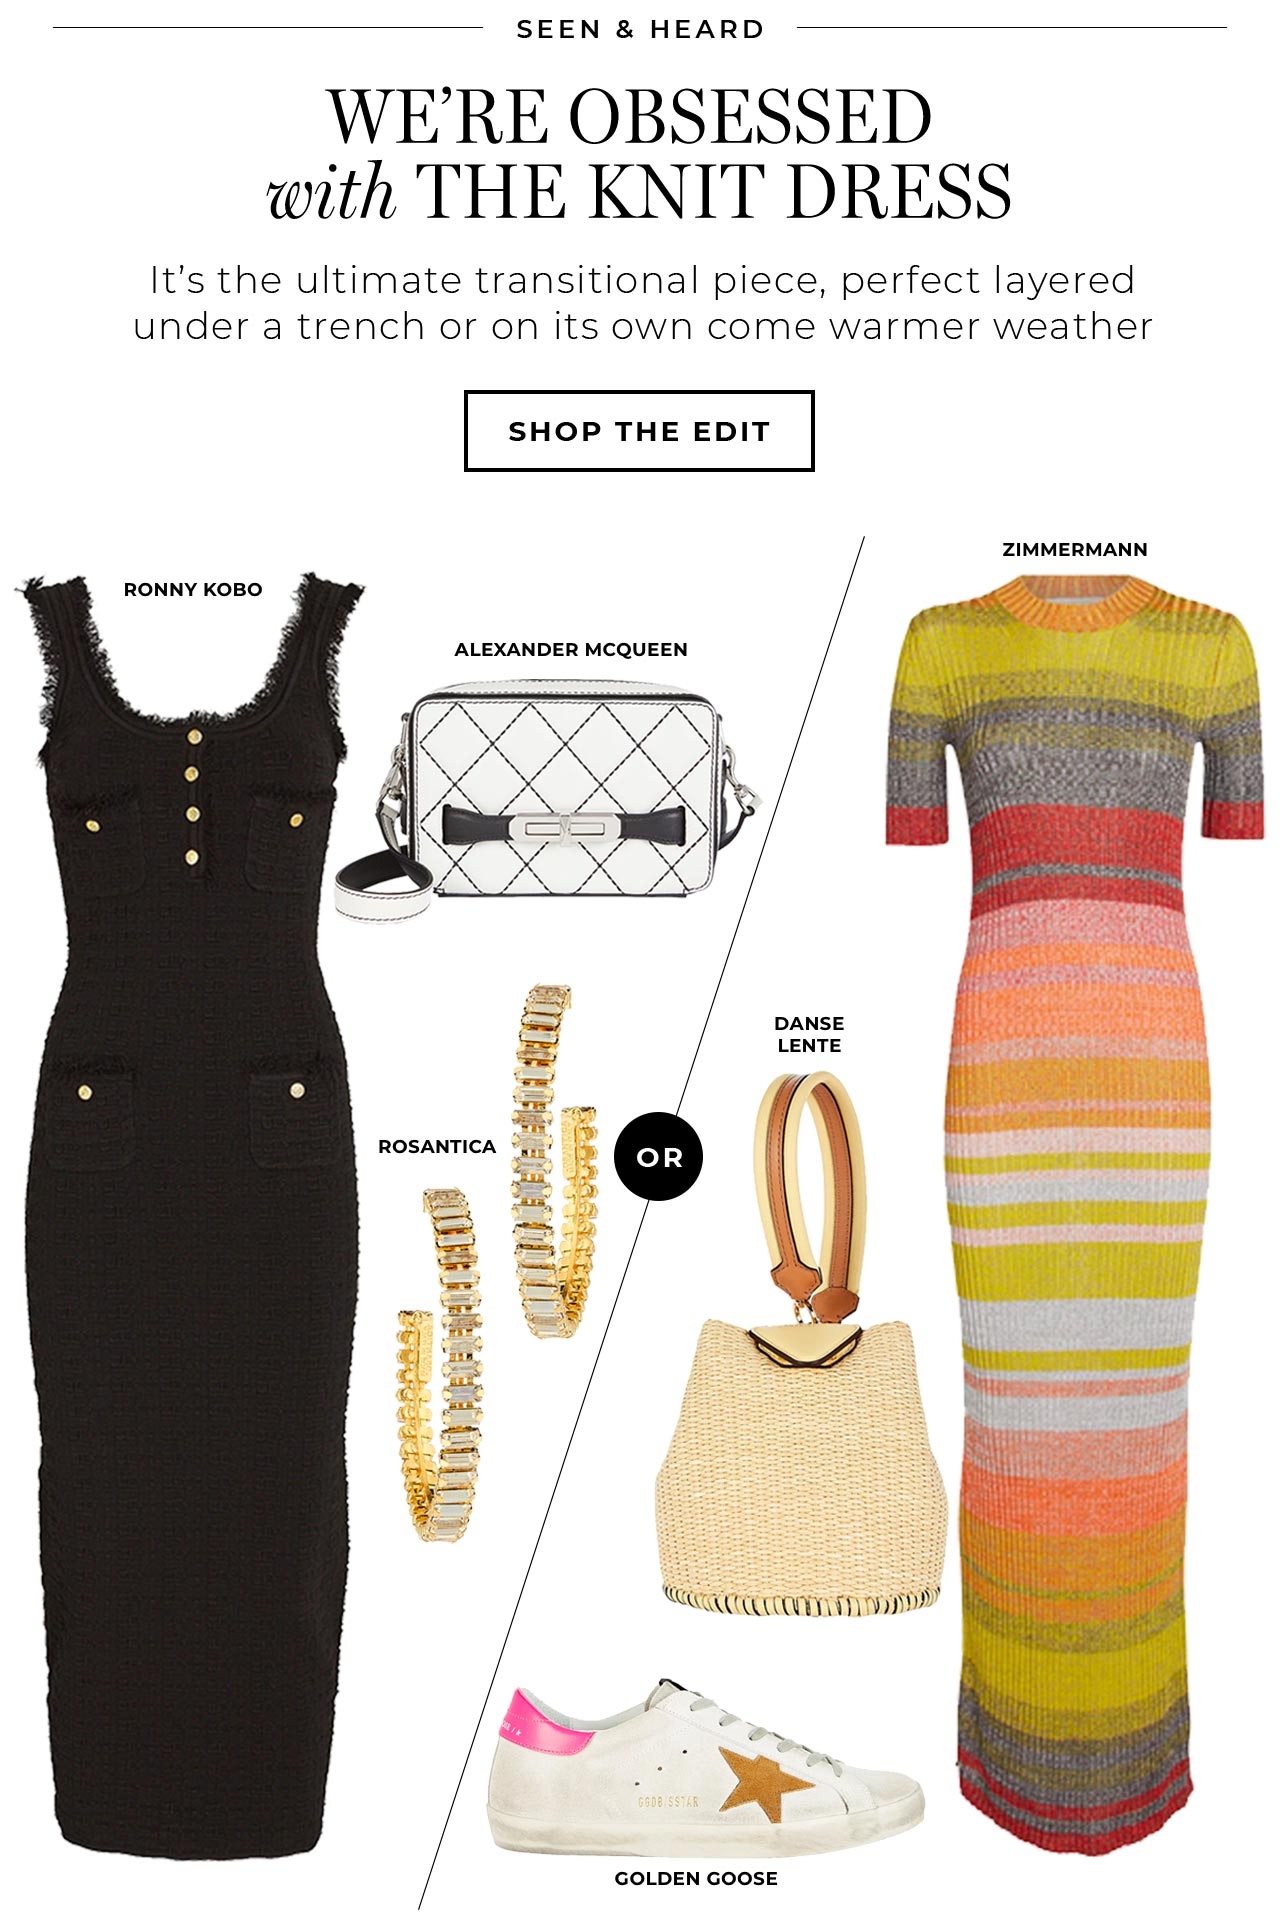 The knit dress is the ultimate transition piece, perfect layered under a trench or on its own in warmer weather